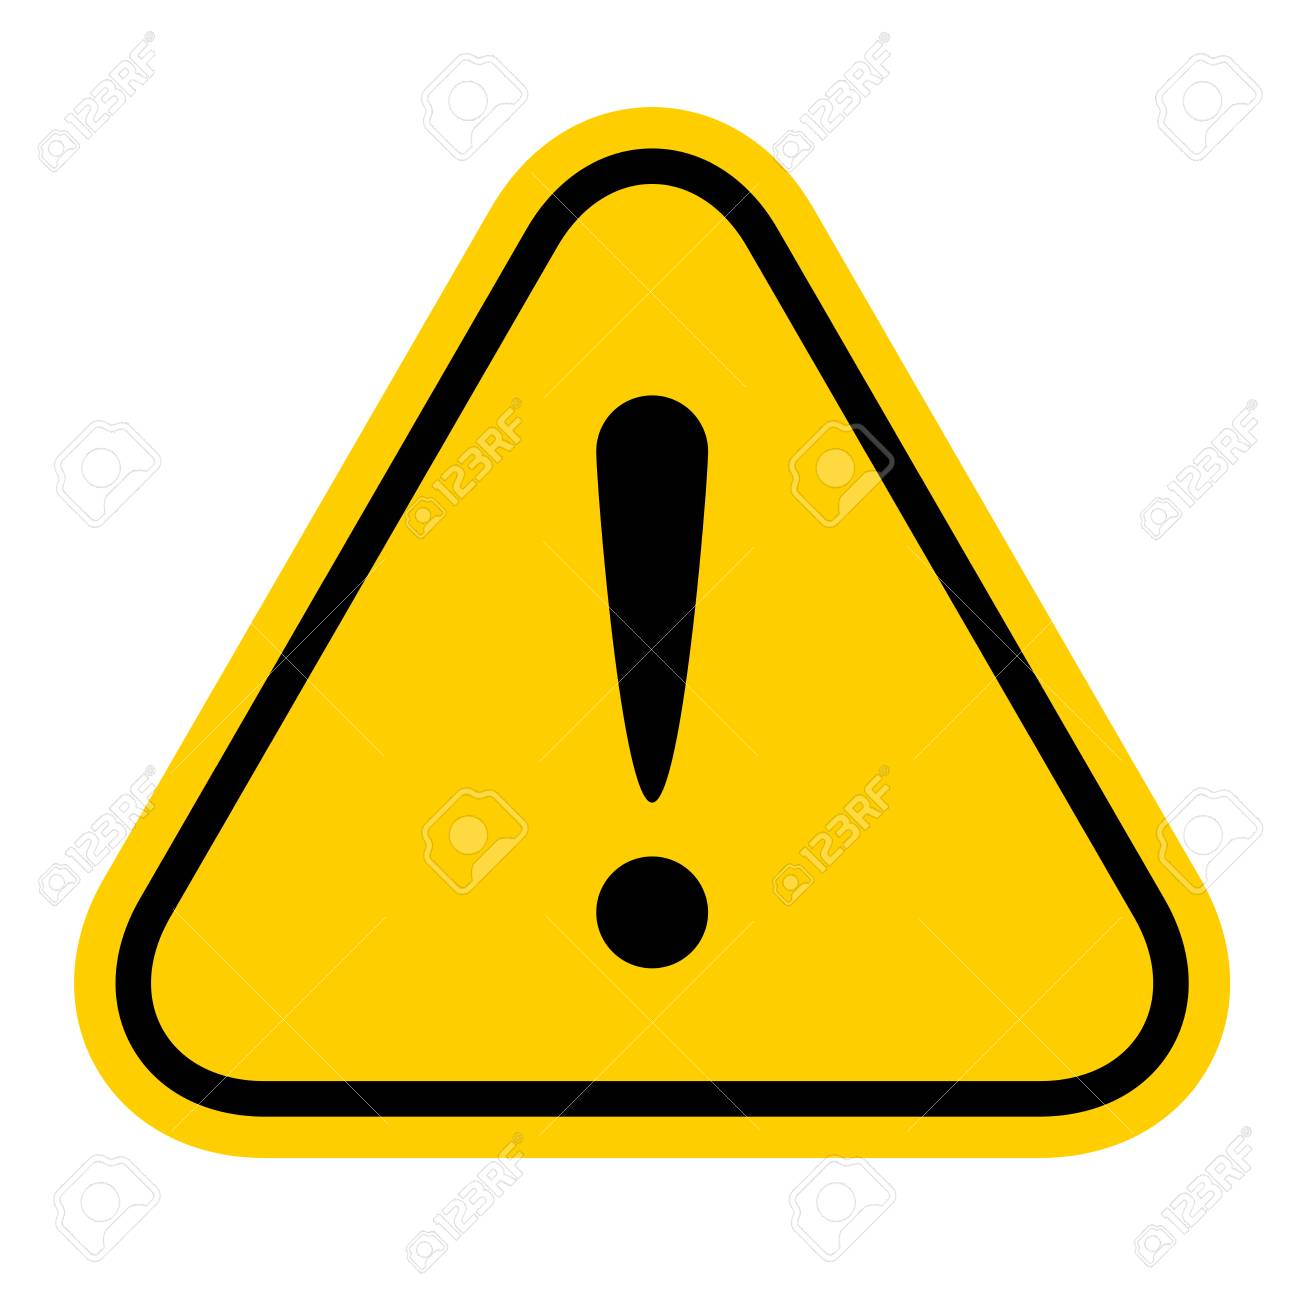 warning sign yellow, exclamation mark icon, danger sign, attention sign, caution alert symbol orange isolated on white background - 120812260